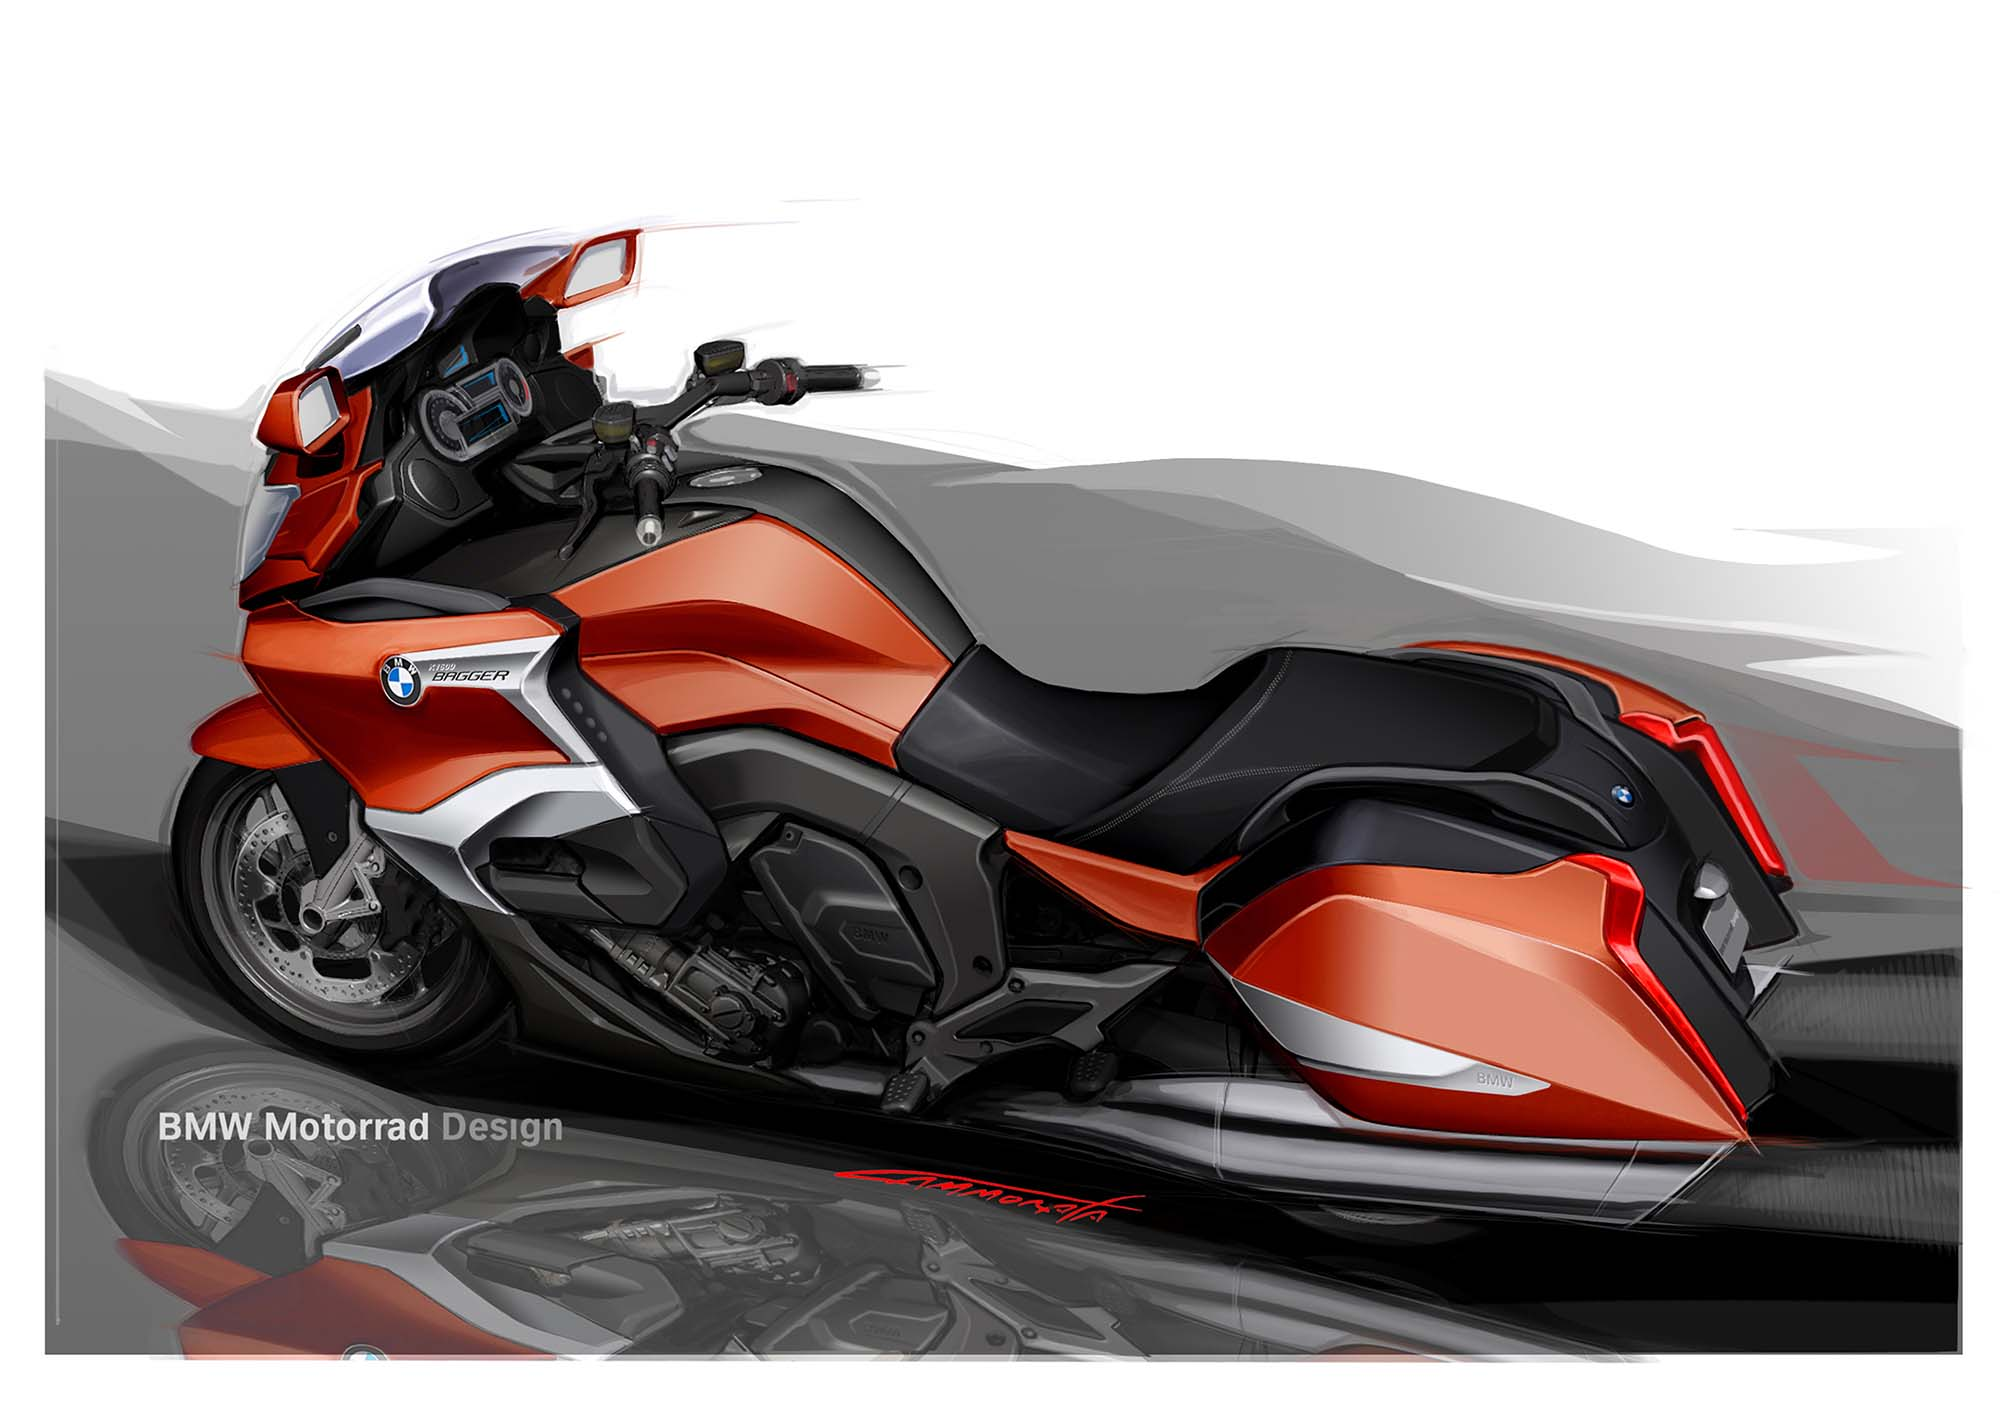 BMW K1600B - Germany's Six-Cylinders of Bagger